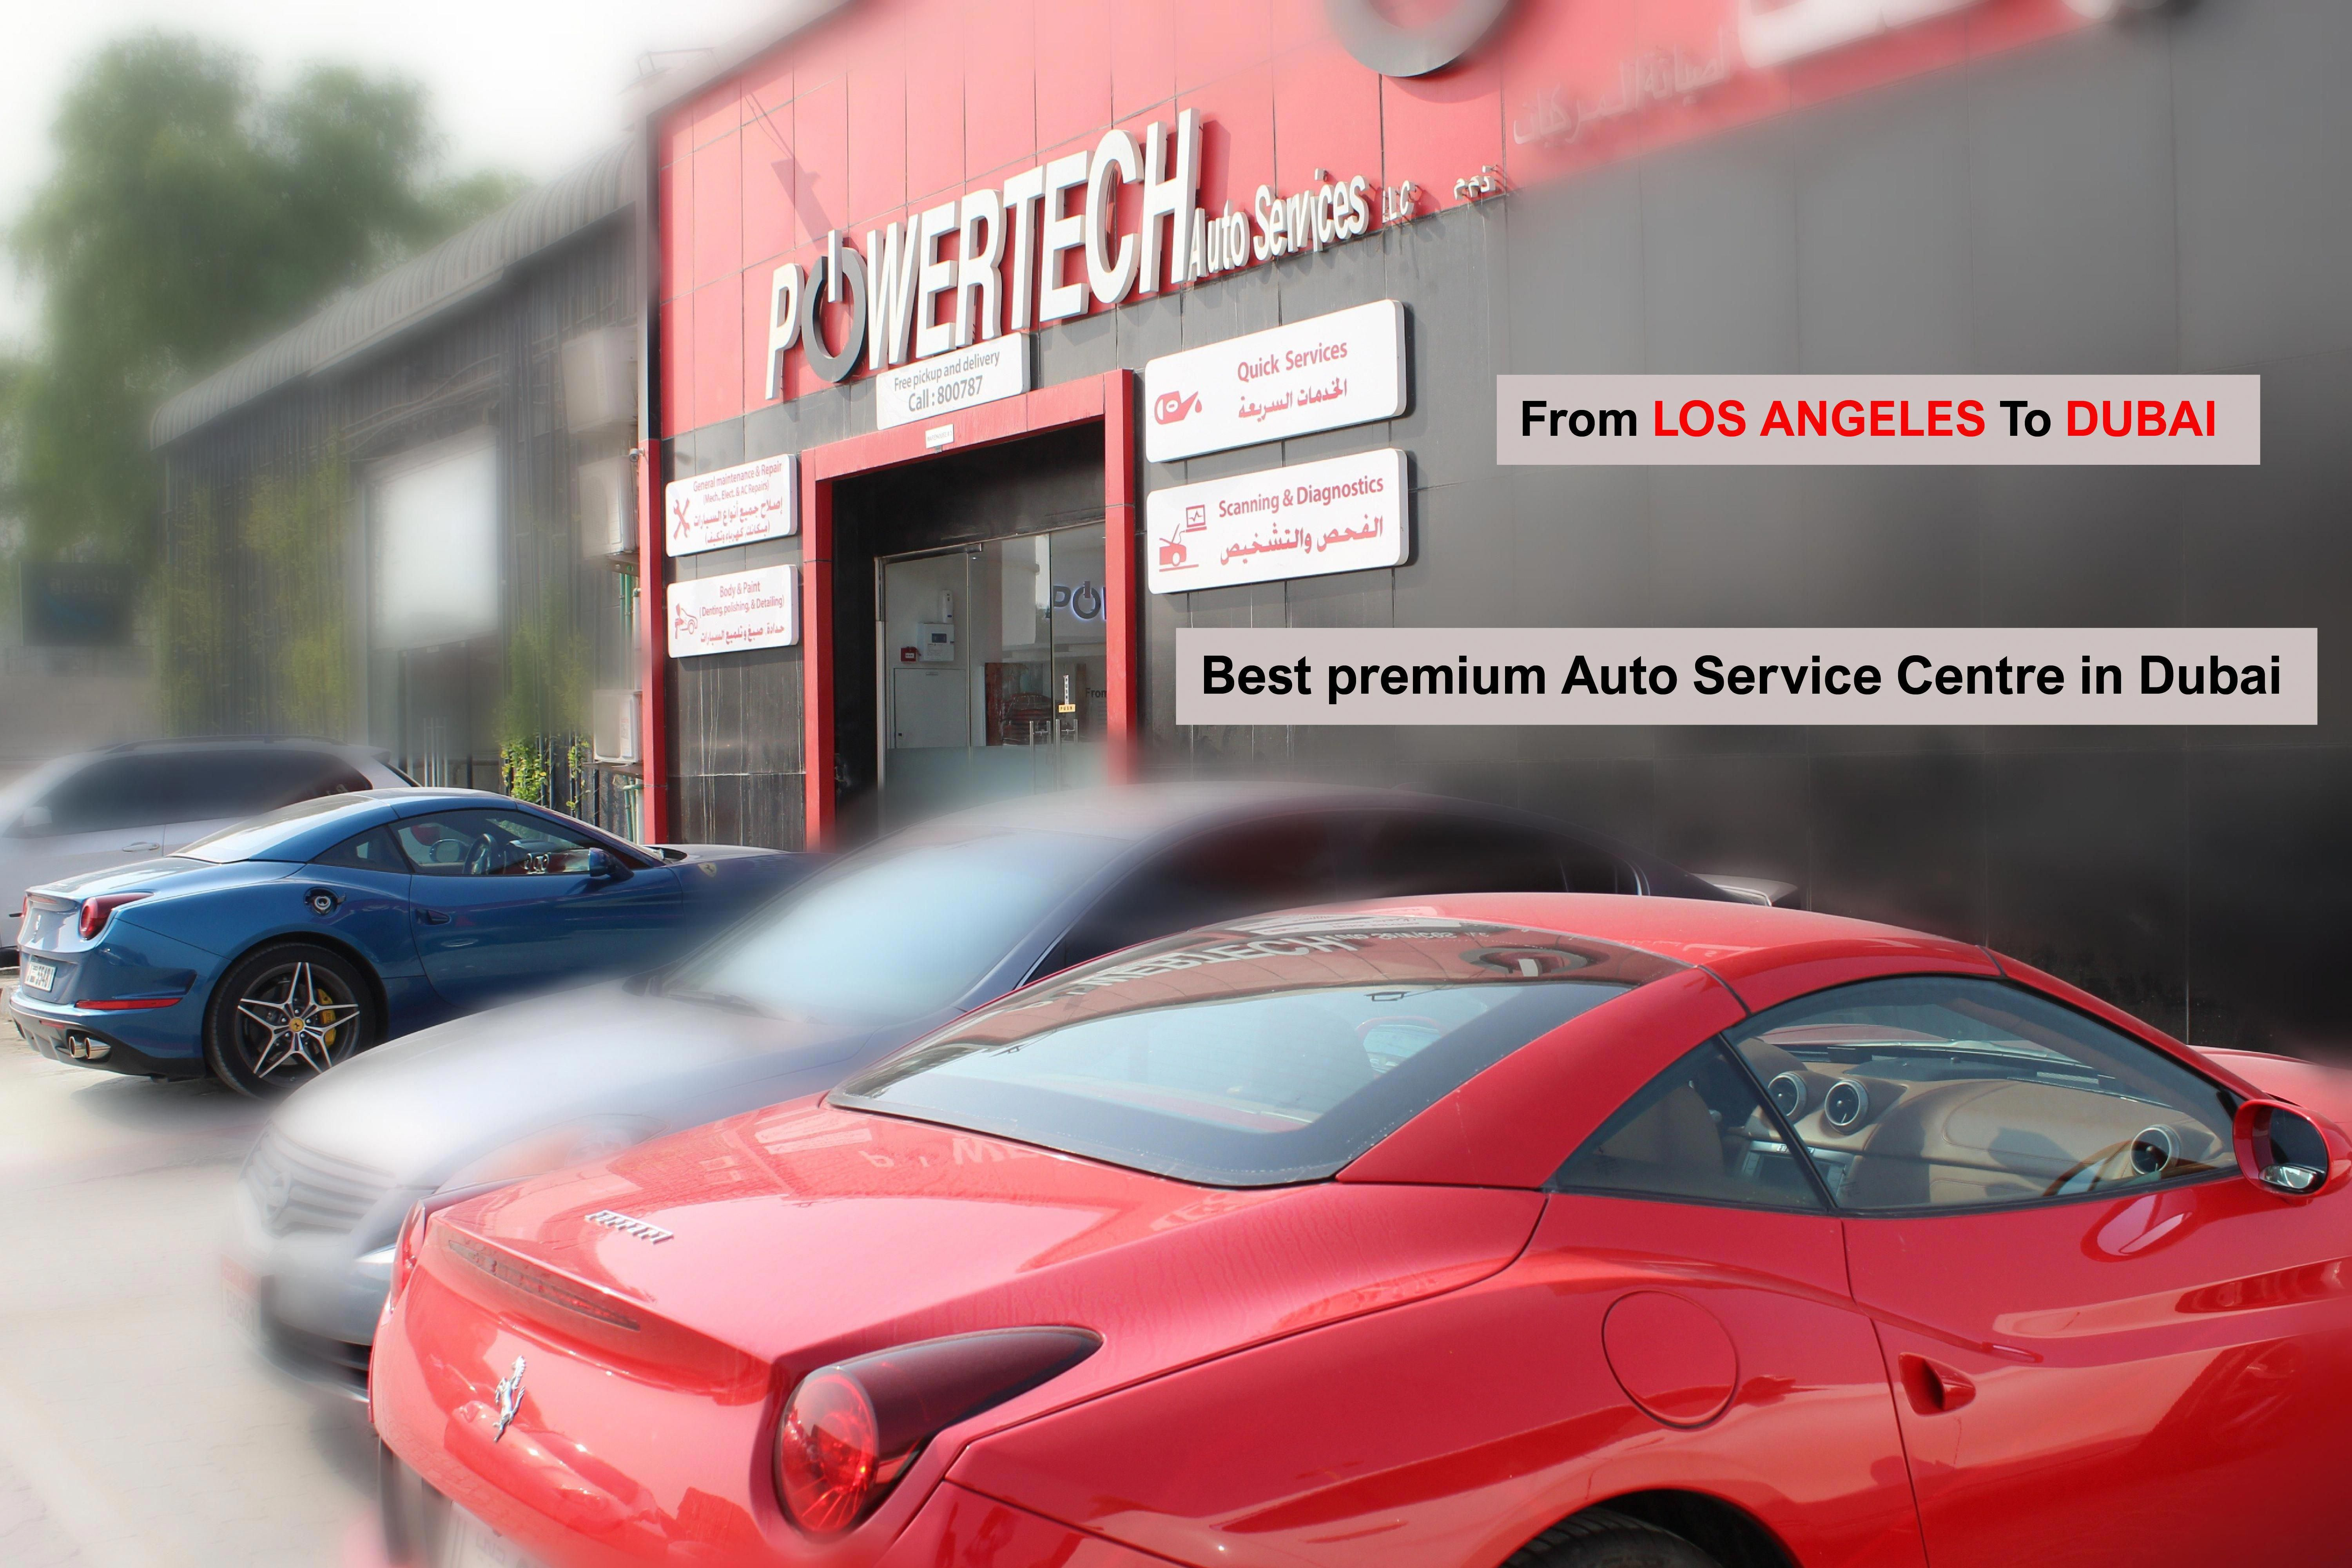 Last Chance This Item For Car Repair Tips Seems Entirely Terrific Ought To Keep This In Mind Next Time I Ve In 2020 Auto Service Car Repair Service Auto Repair